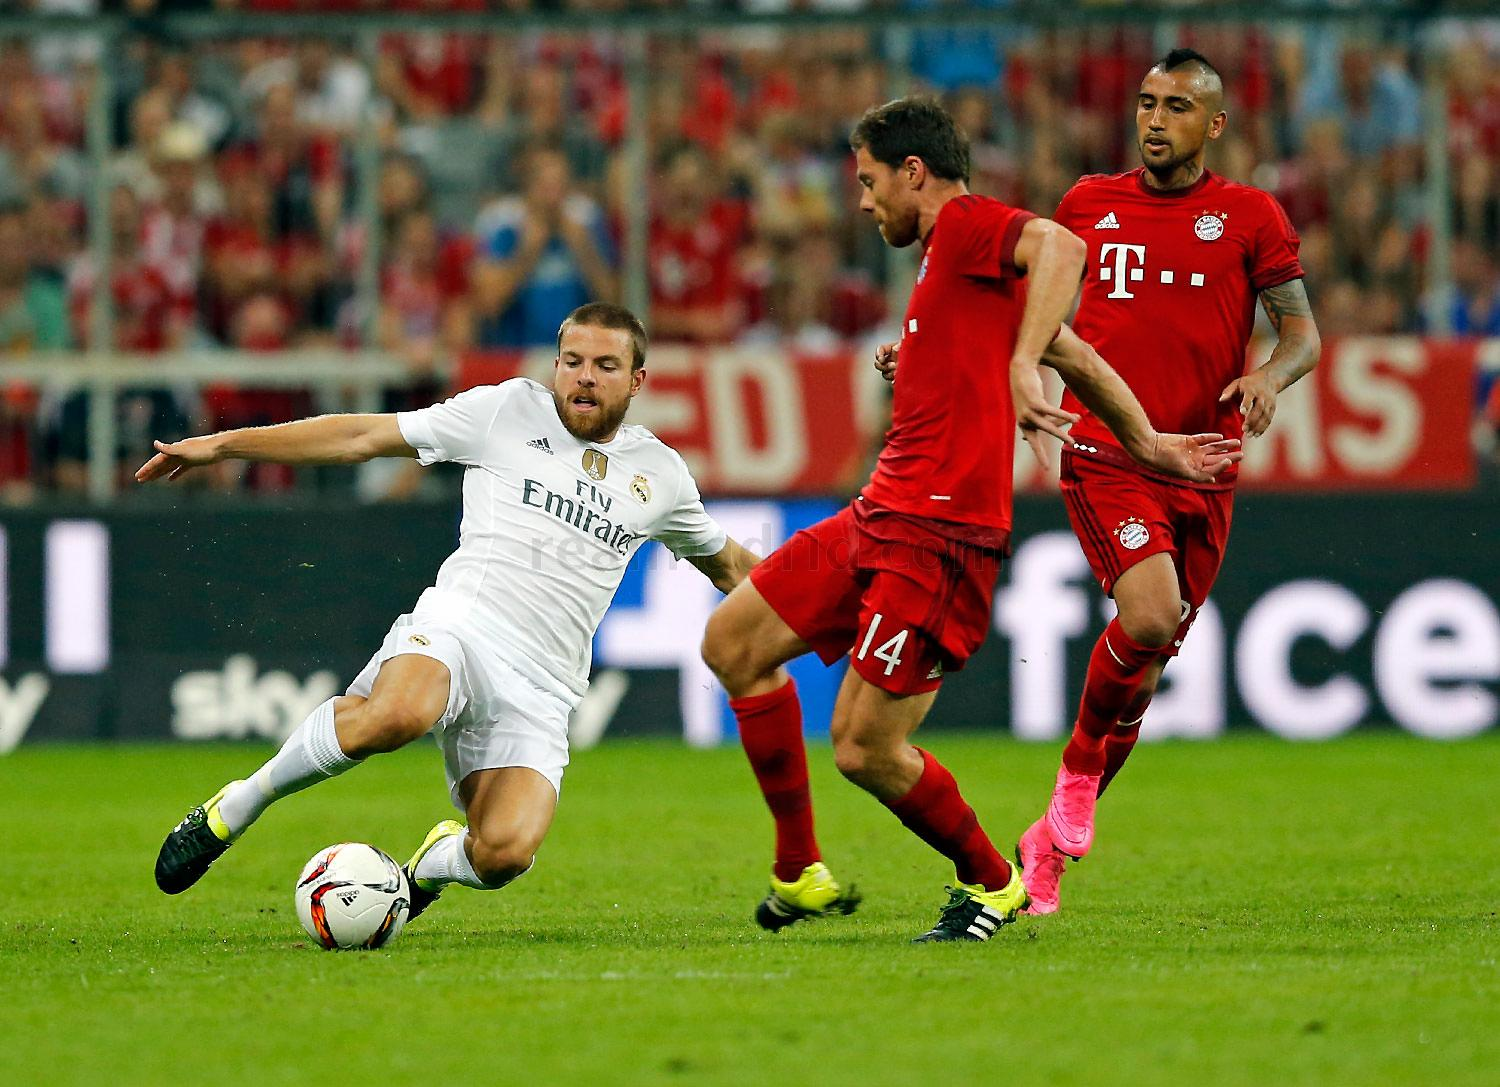 Real Madrid - Real Madrid - FC Bayern München - 05-08-2015